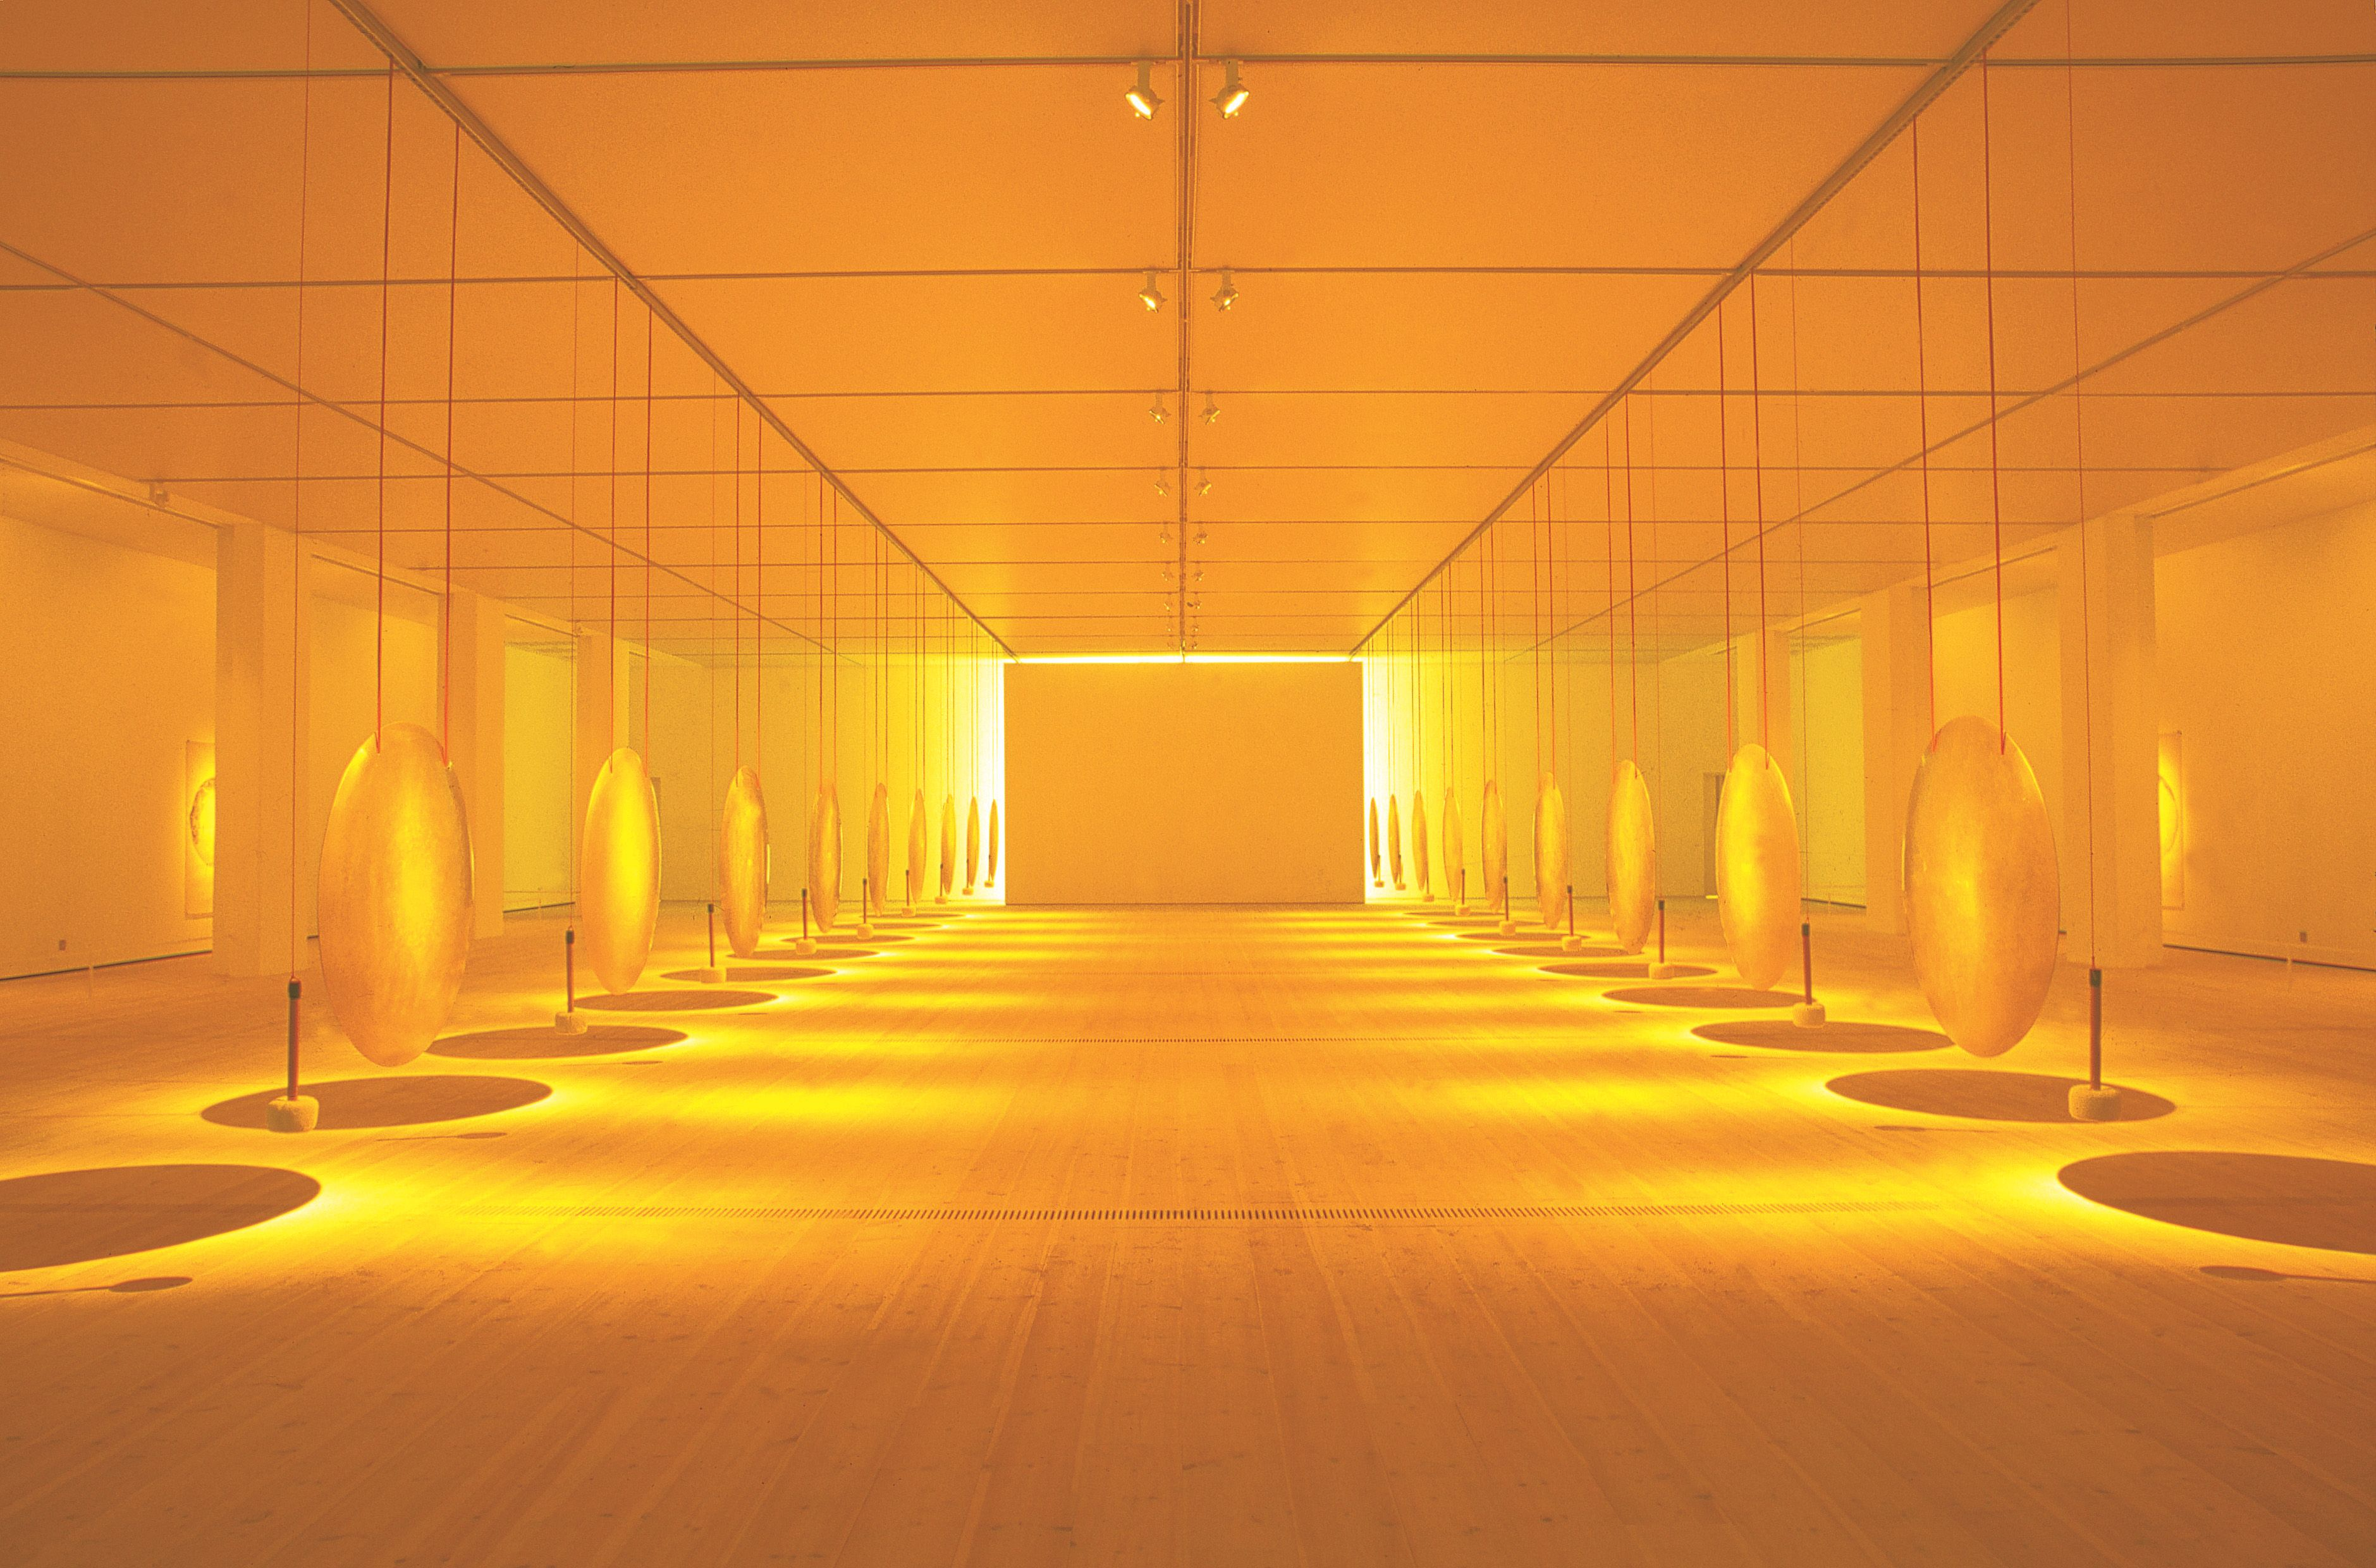 B.OPEN: Jaume Plensa   13 July 2002 - 18 August 2003   Photo: ©  2002 BALTIC Centre for Contemporary Art